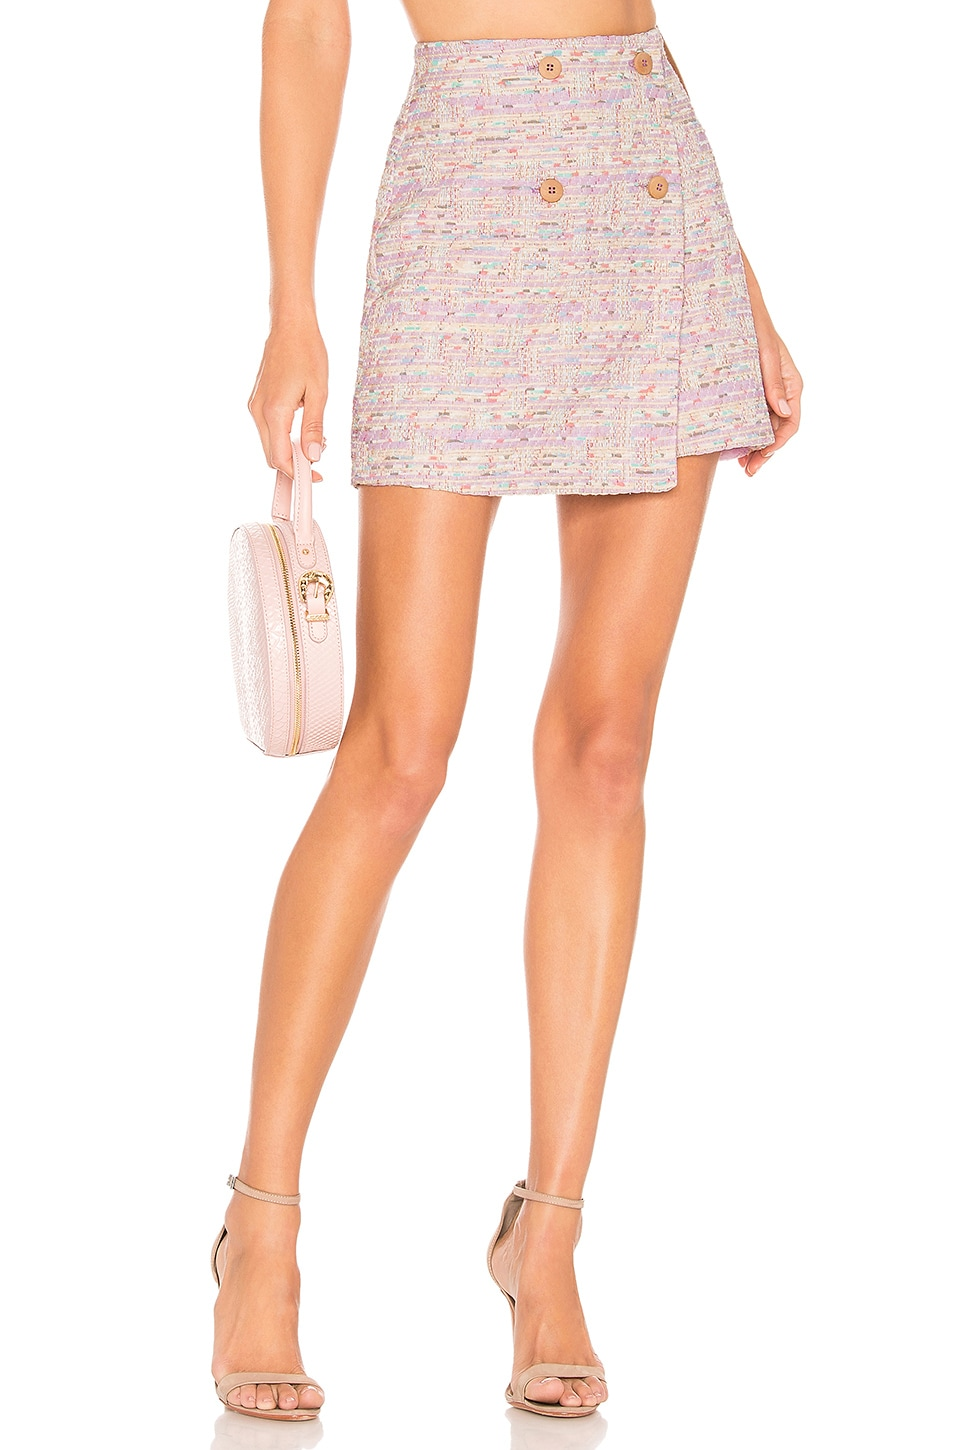 Privacy Please Miriam Mini Skirt in Lavender Multi